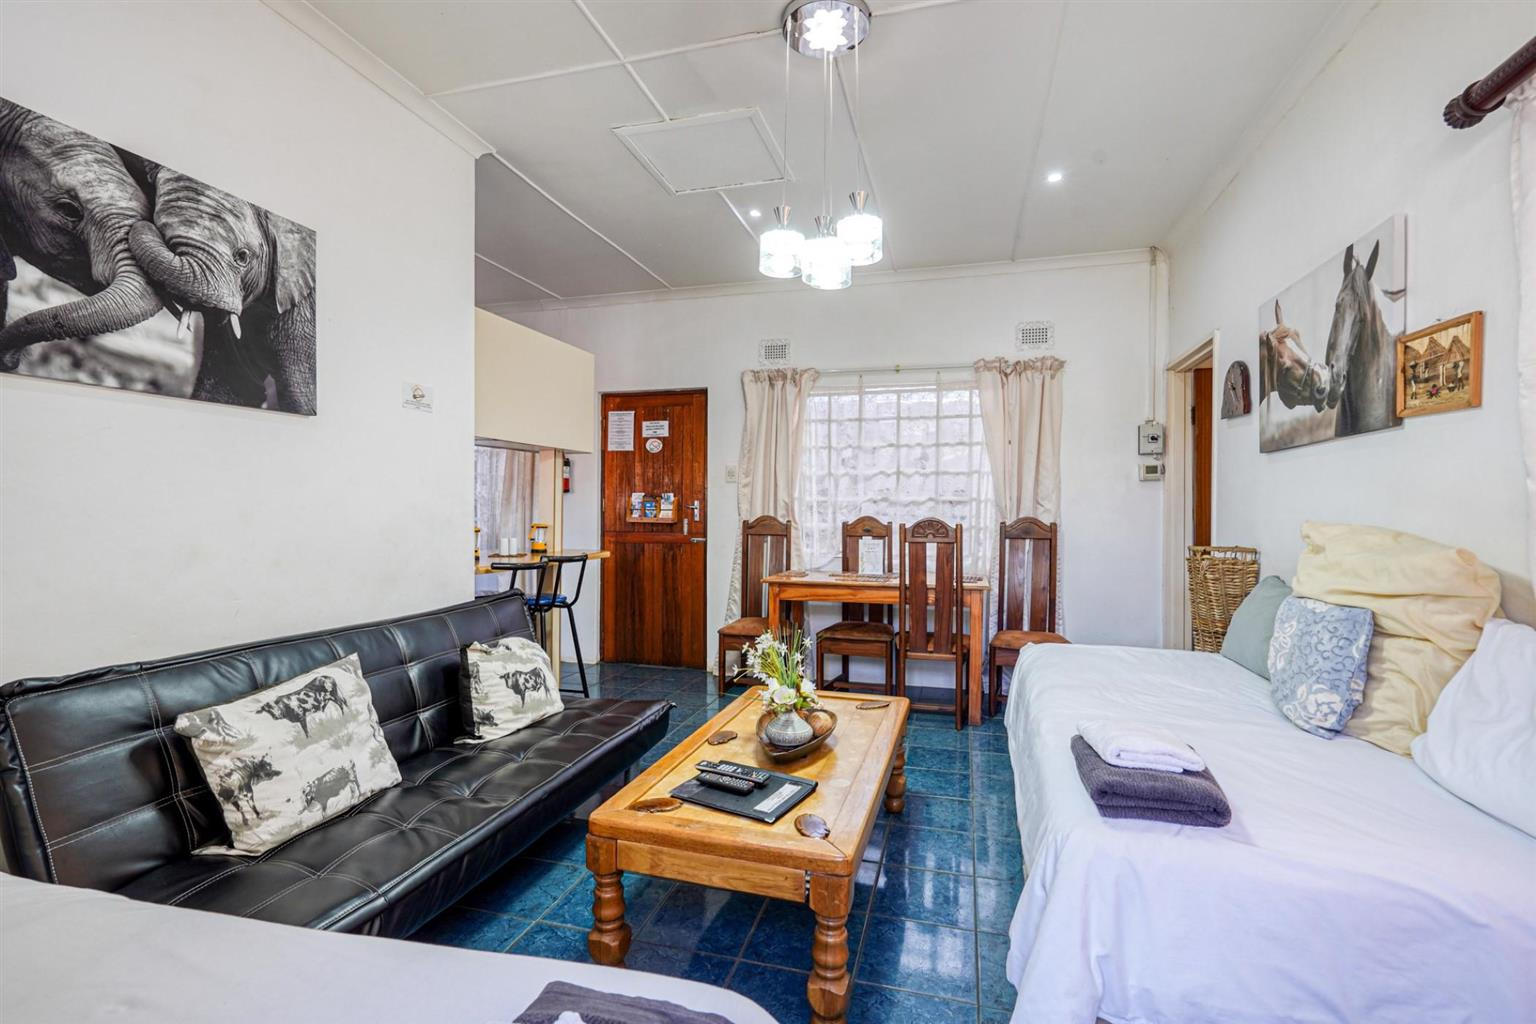 Bed and Breakfast or Self Catering Accommodation